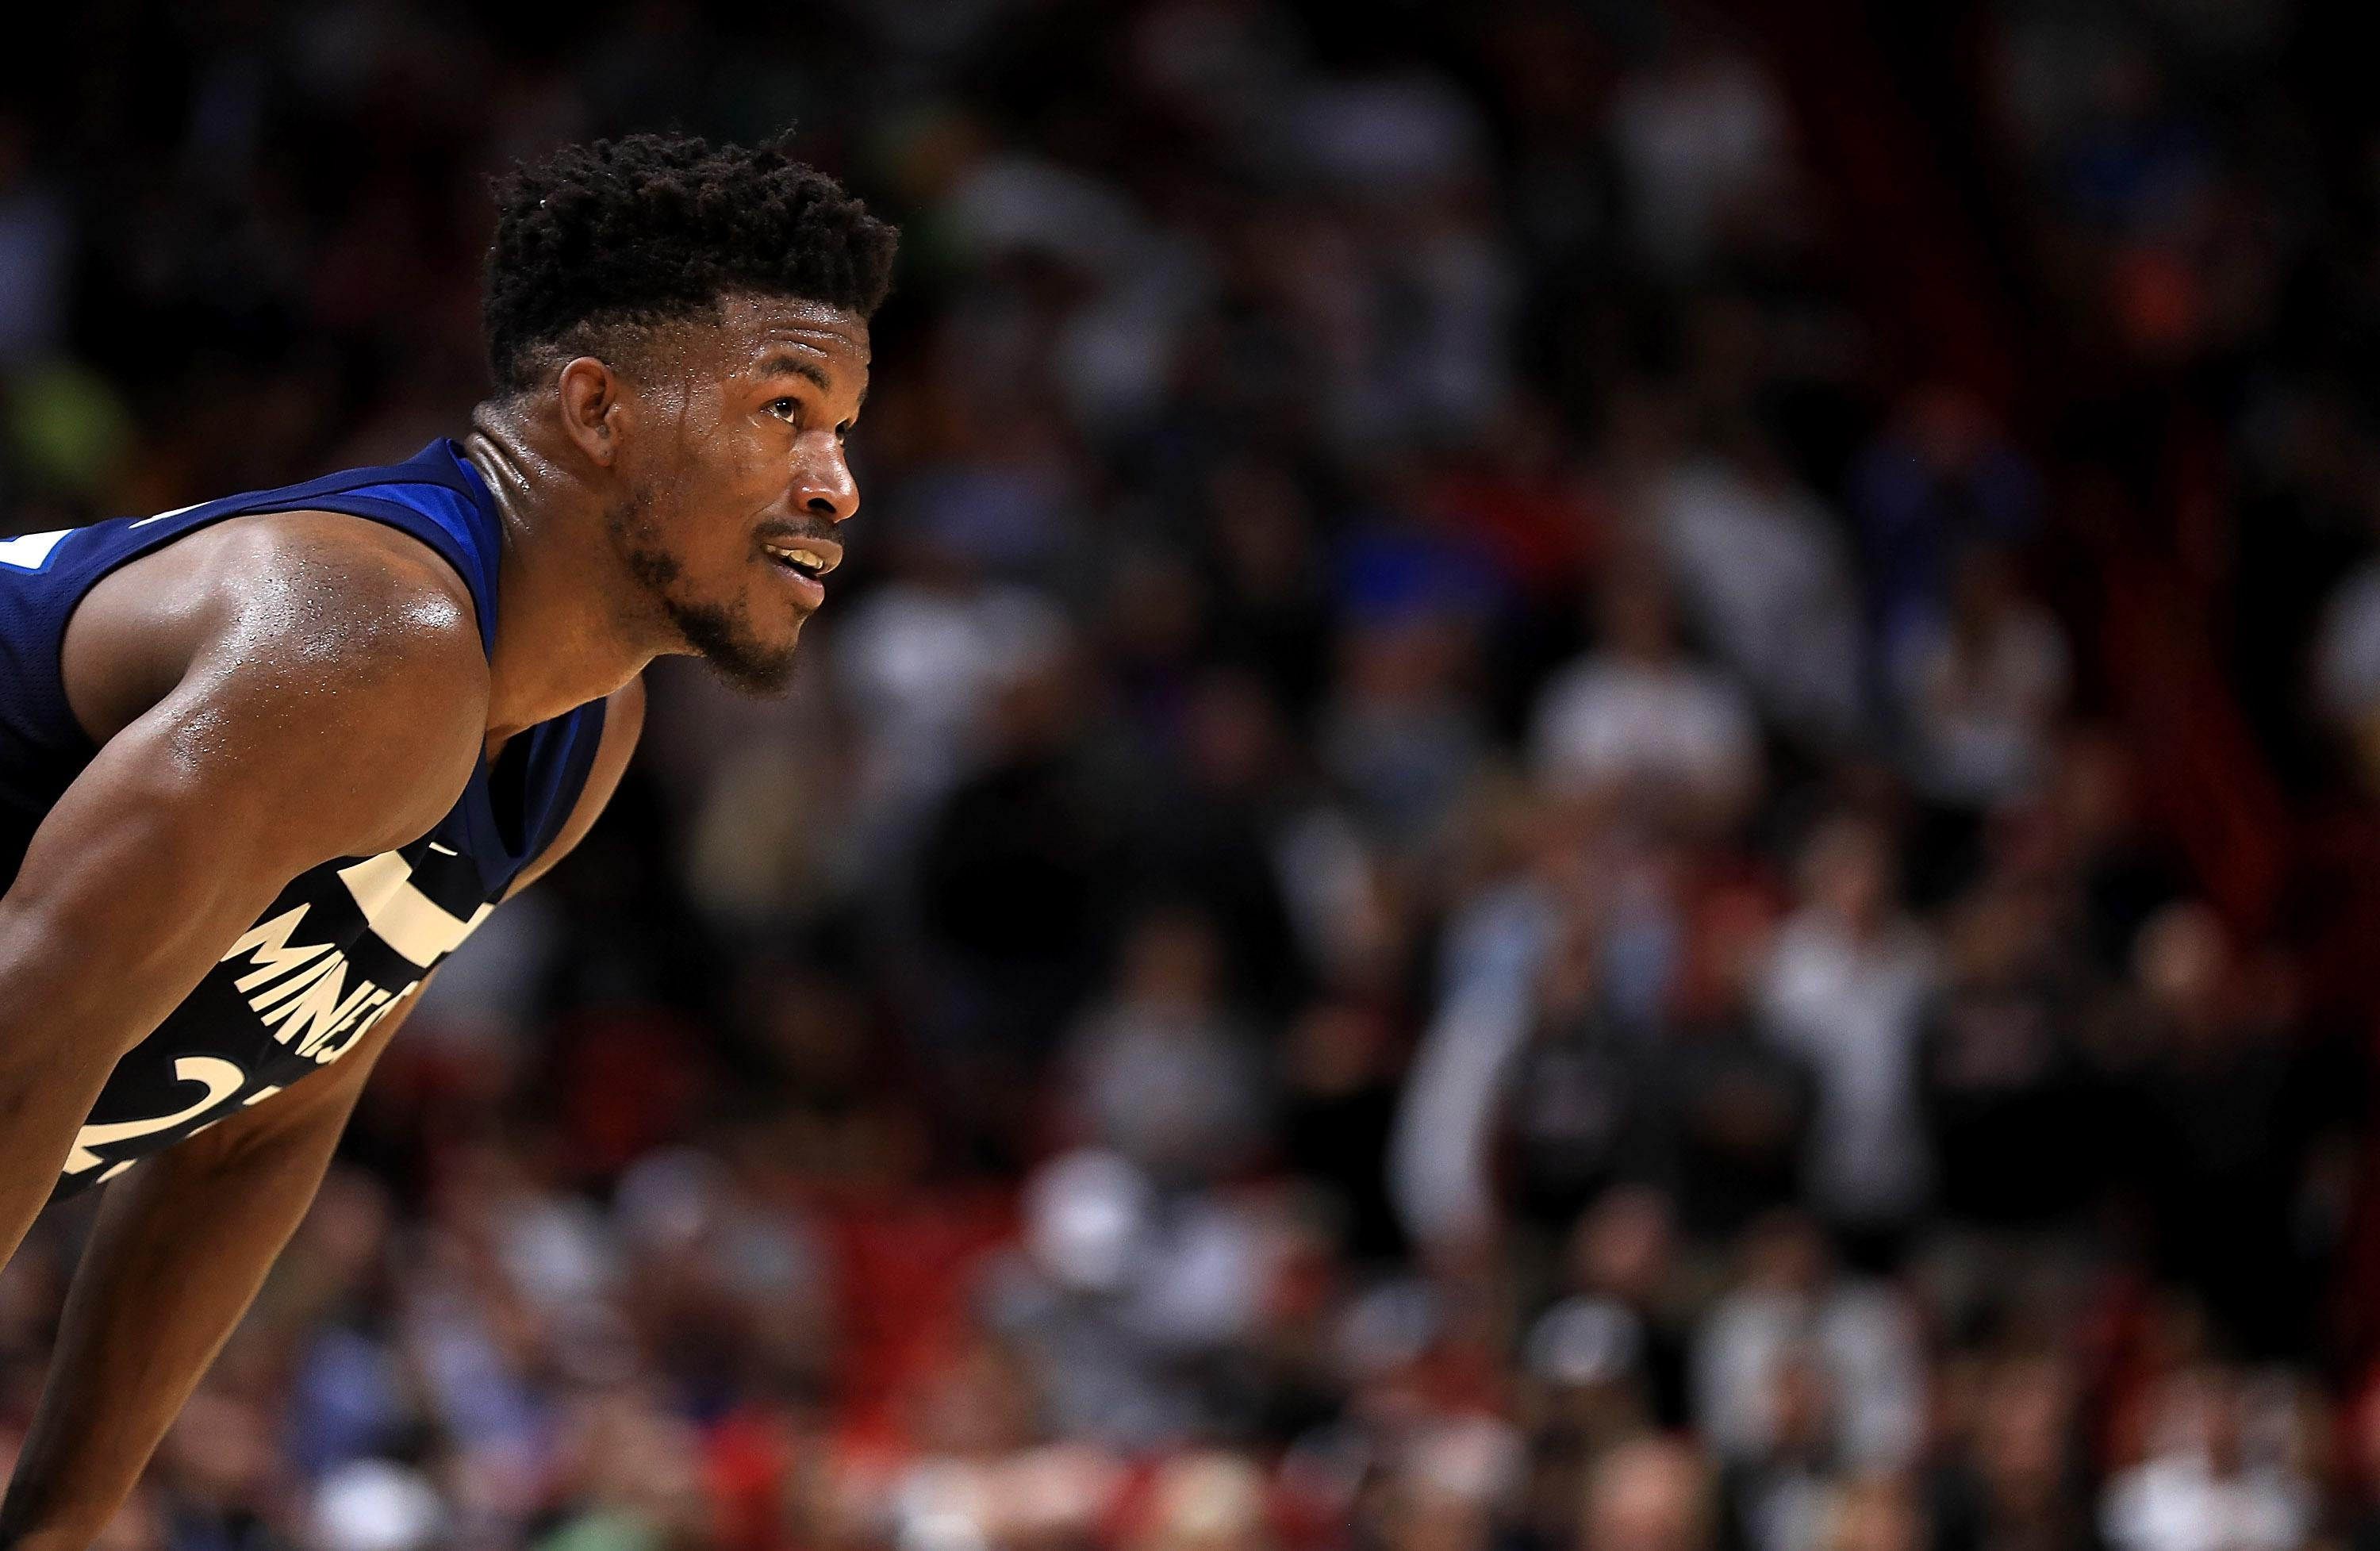 MIAMI, FL - OCTOBER 30:  Jimmy Butler #23 of the Minnesota Timberwolves looks on during a game against the Miami Heat at American Airlines Arena on October 30, 2017 in Miami, Florida. NOTE TO USER: User expressly acknowledges and agrees that, by downloading and or using this photograph, User is consenting to the terms and conditions of the Getty Images License Agreement.  (Photo by Mike Ehrmann/Getty Images)